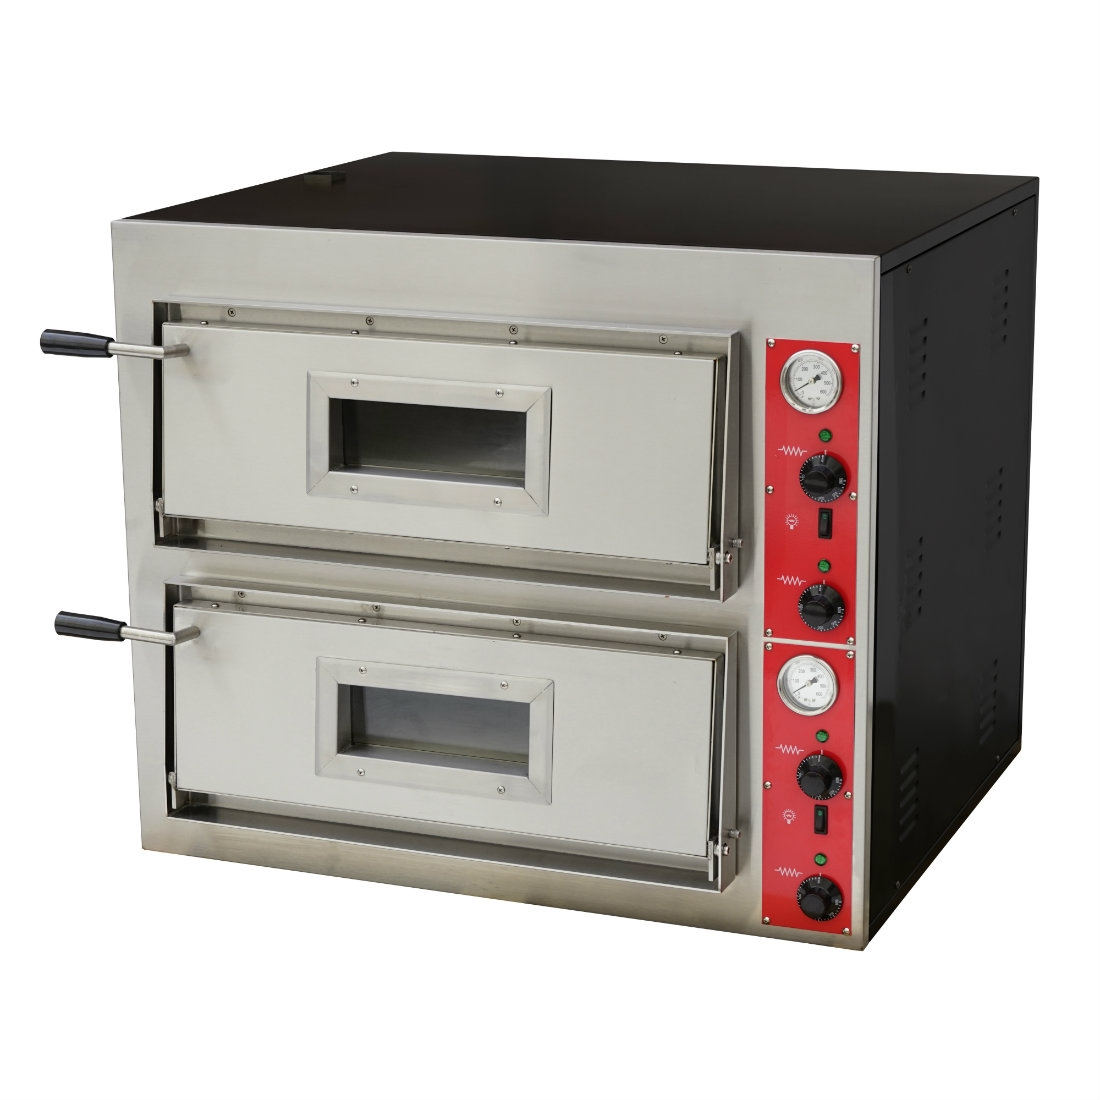 EP-1-SDE - Germany's Black Panther Pizza Deck Oven